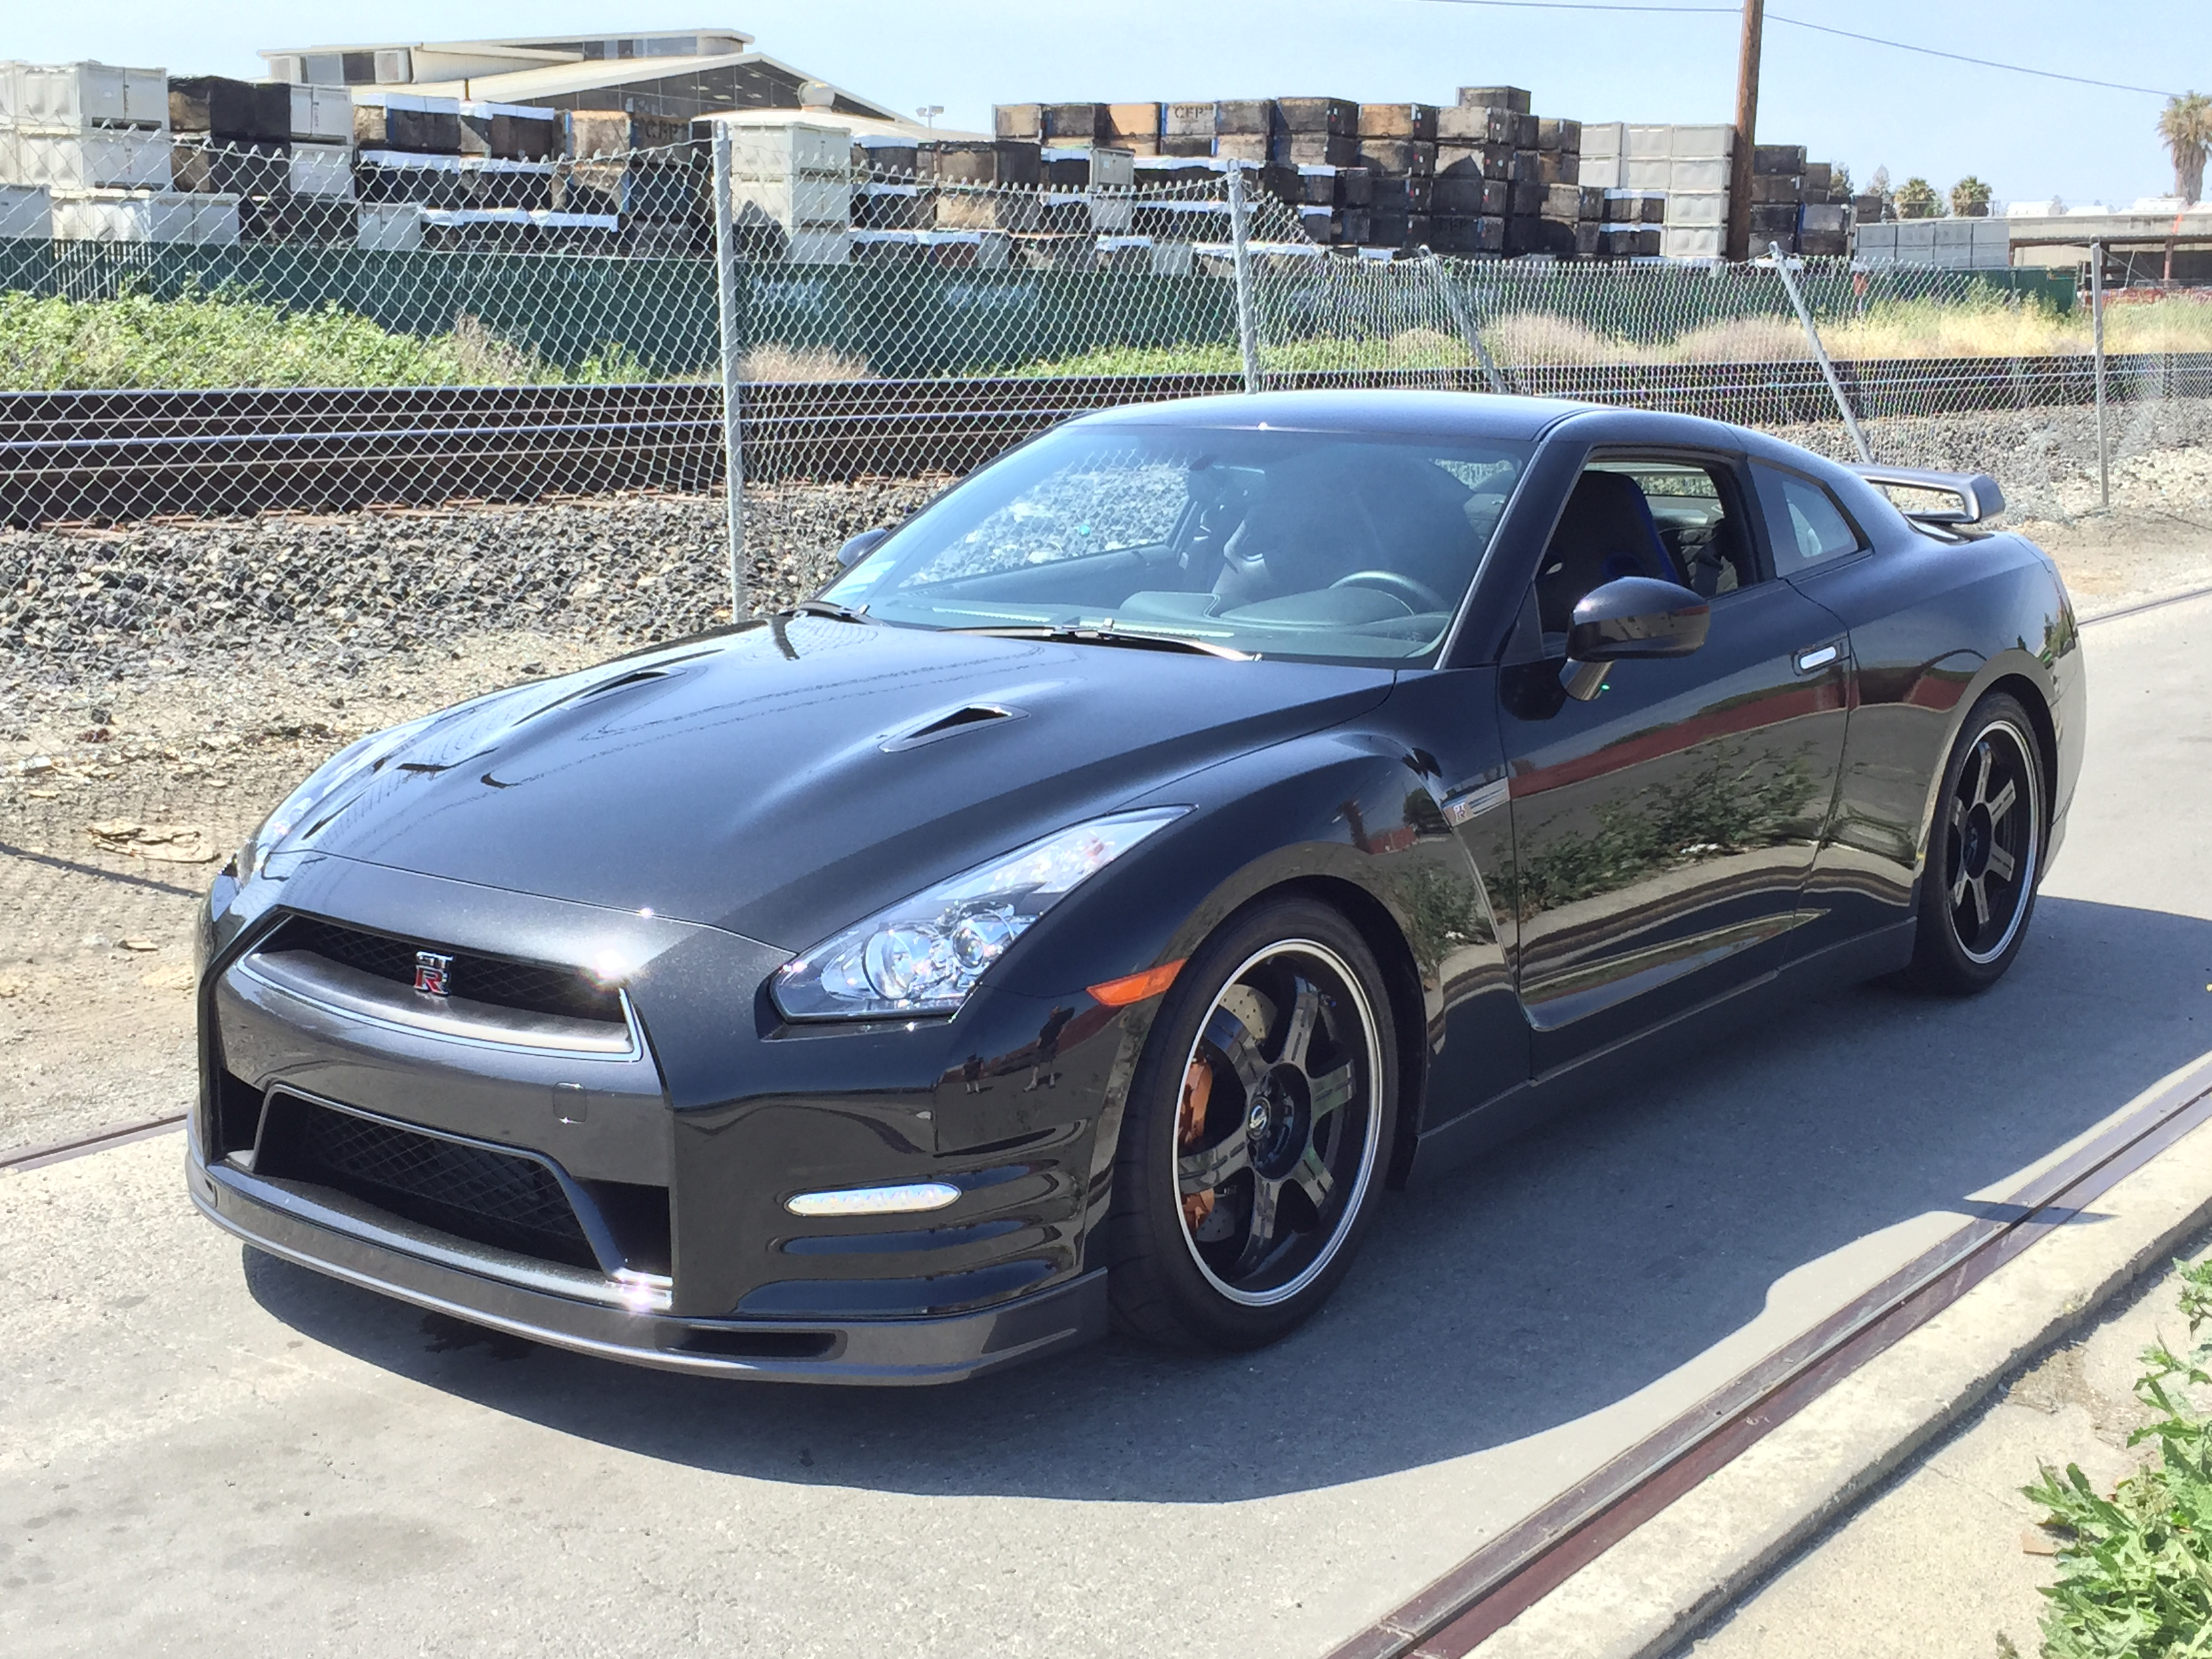 2014 Nissan GT R R35 Track Edition Mileage 1400 Miles Since Purchase 86000 OBO